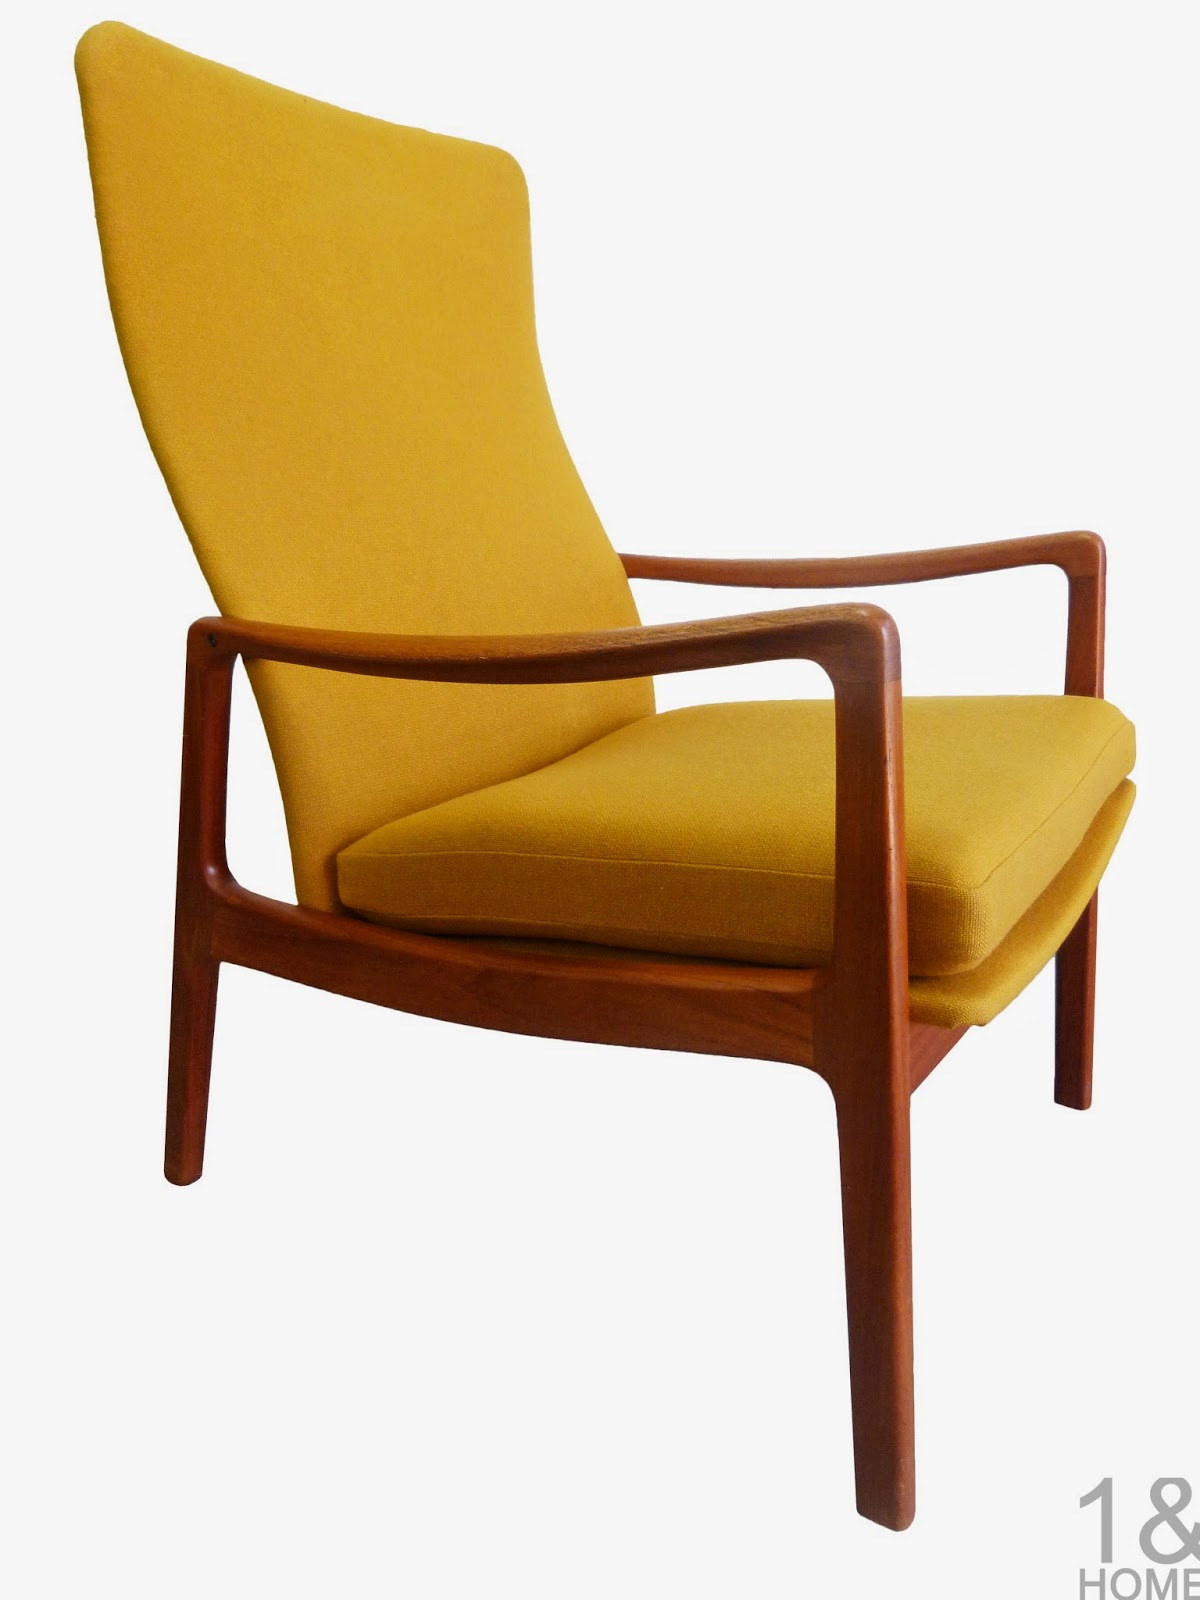 Danish Modern, teak, high-back lounge armchair by Ole Wanscher for France & Sons of Denmark.